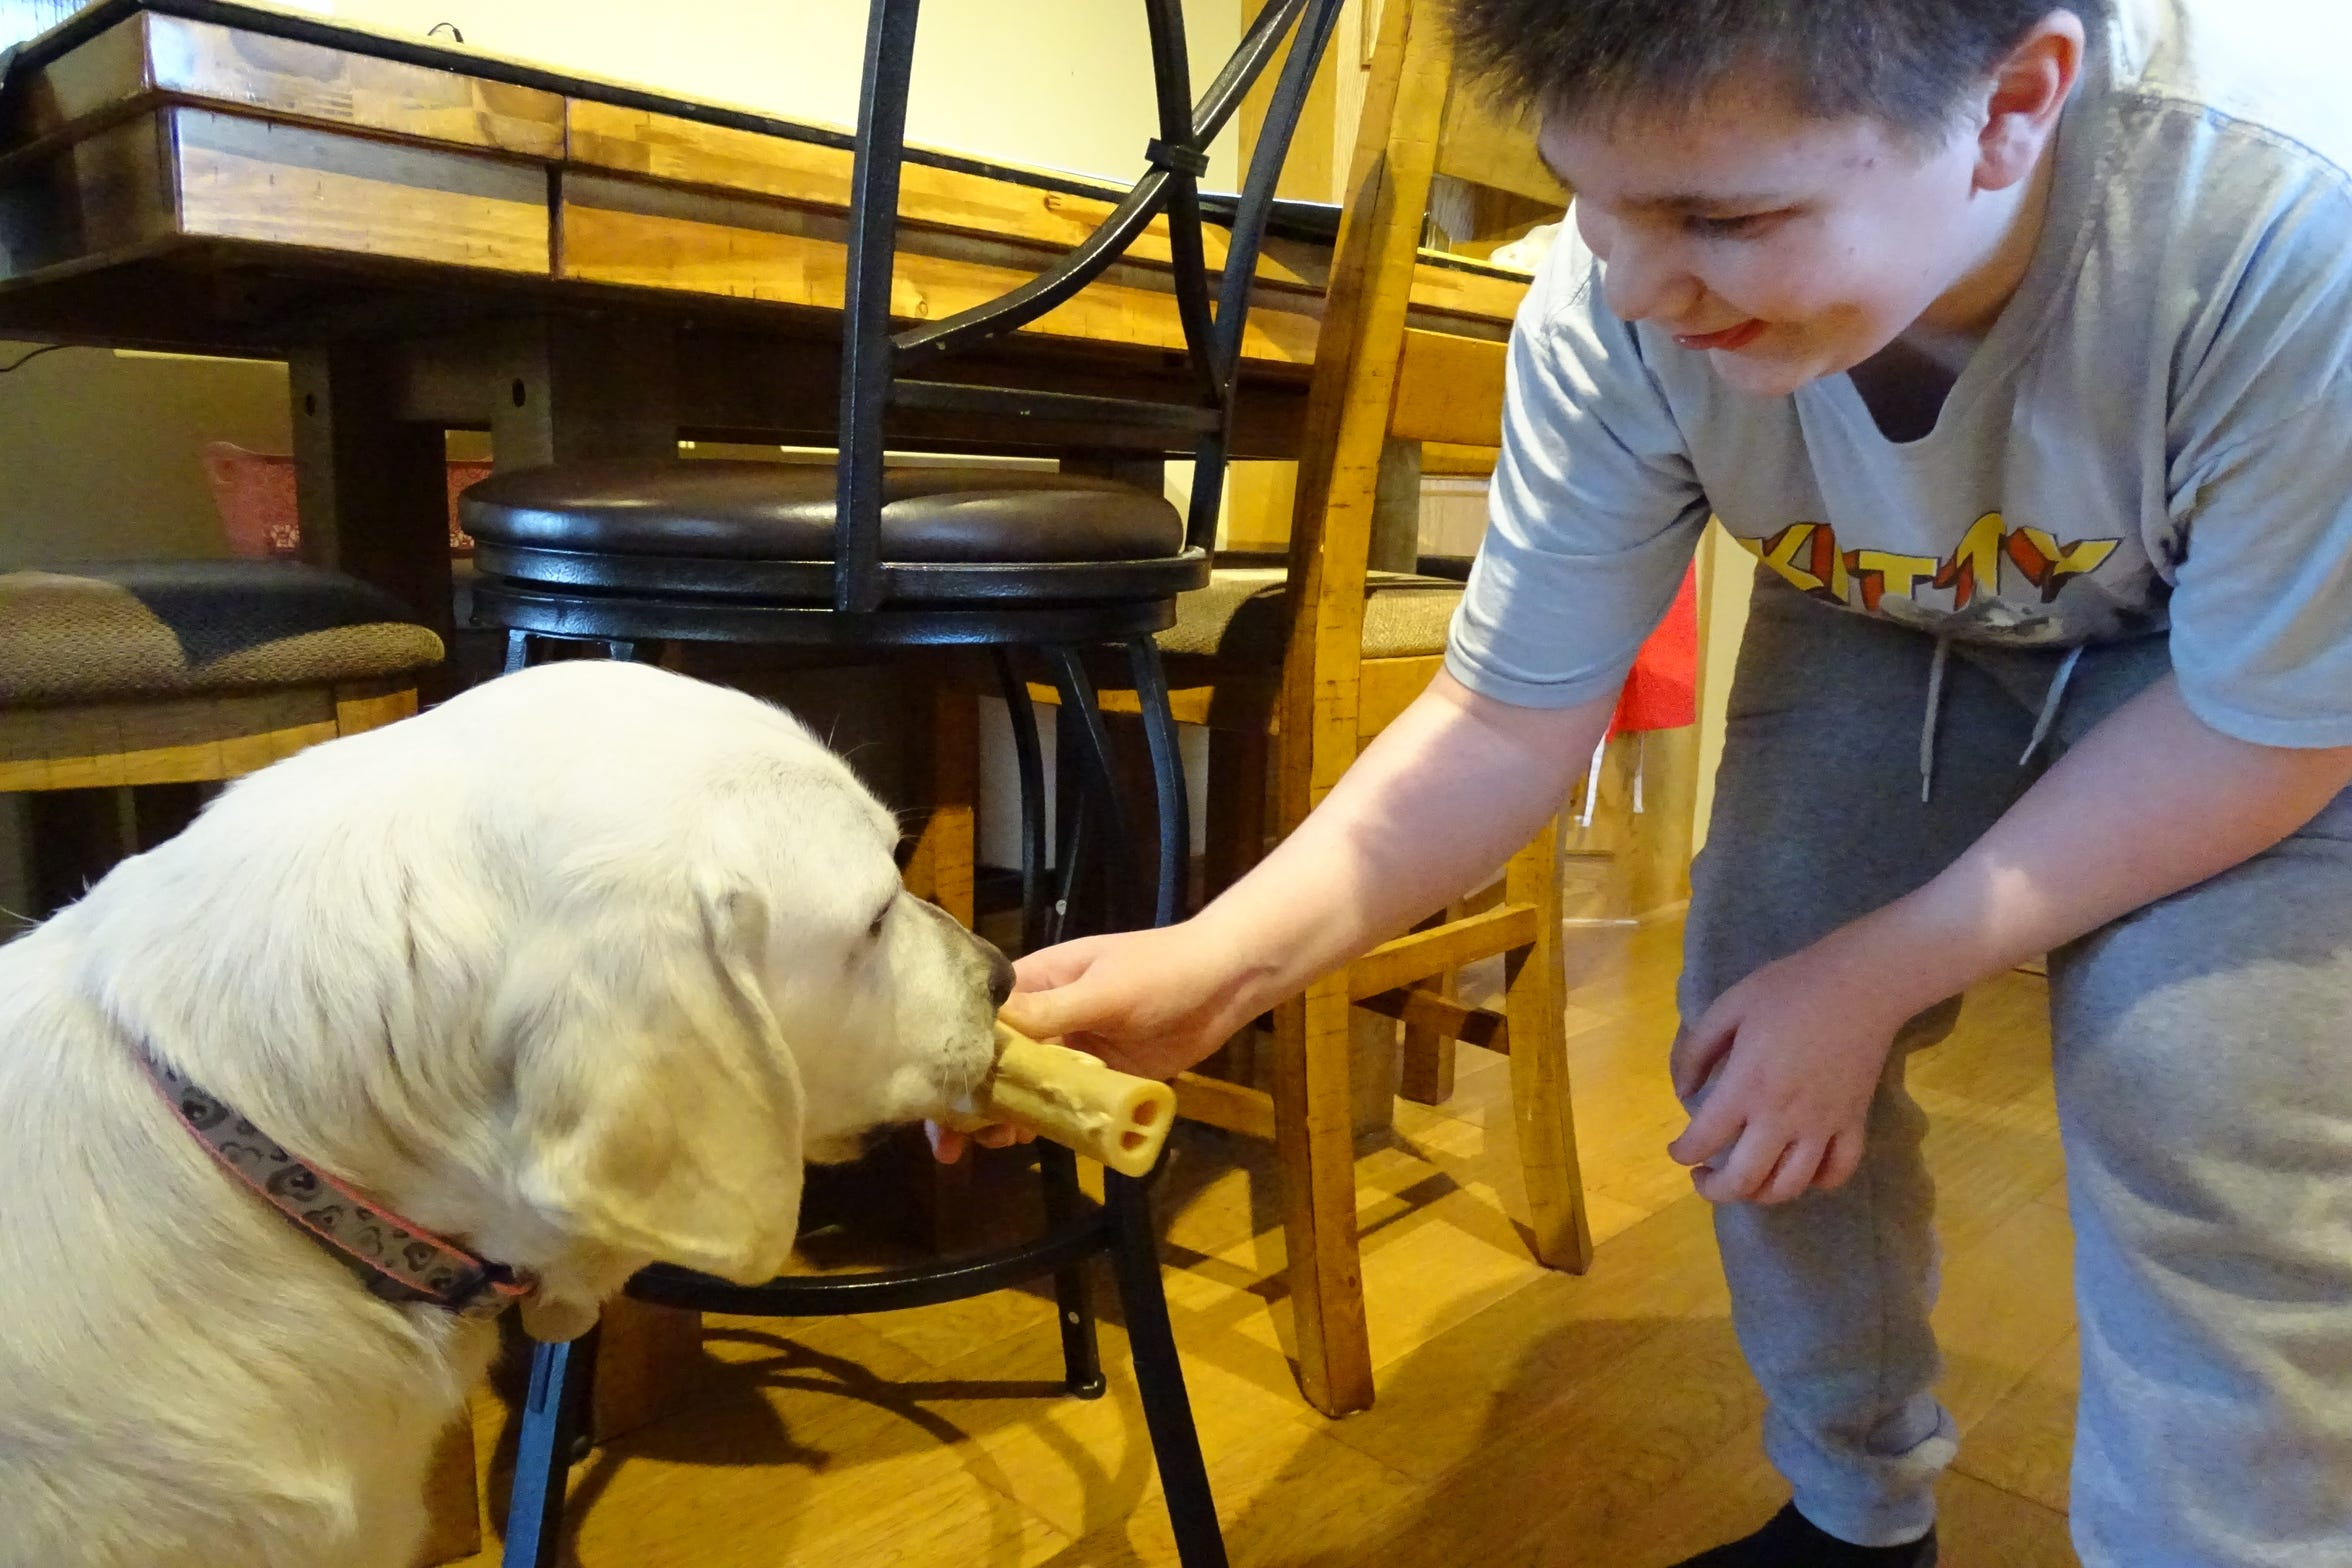 The bonding process for Brenden and Jewell involves a lot of treats. Jewell was happy to cooperate.